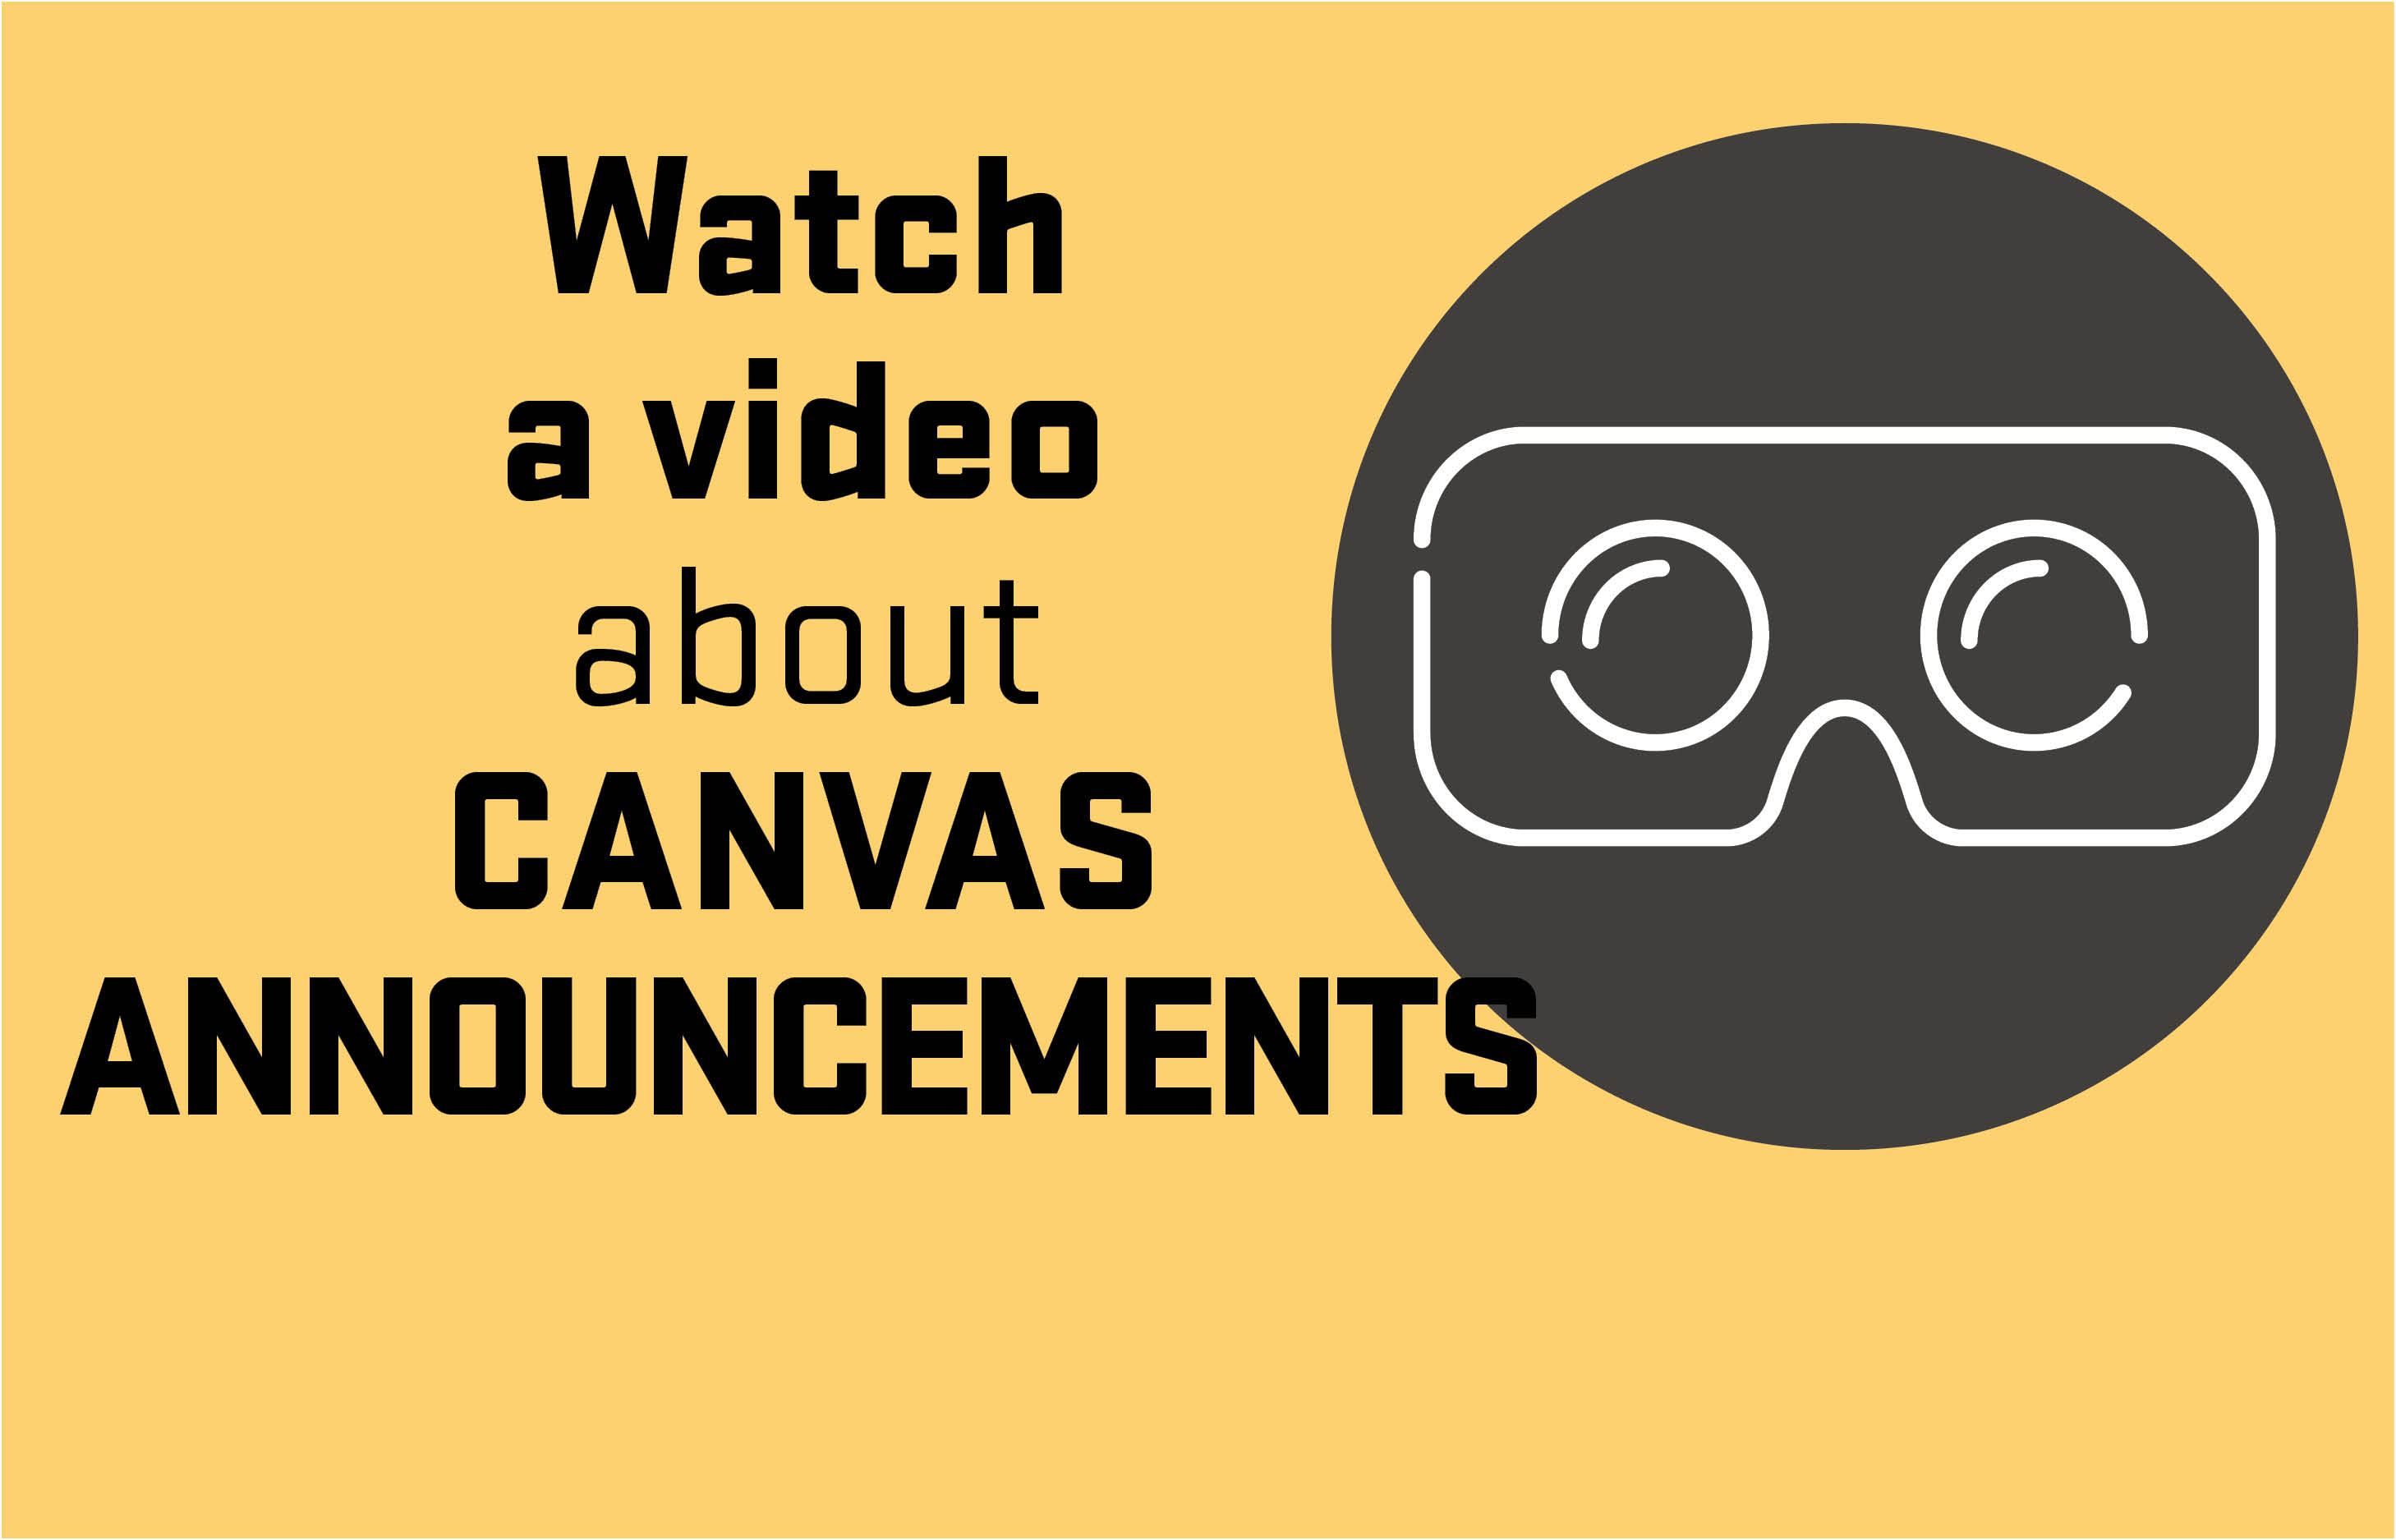 Watch a video about Canvas Announcements